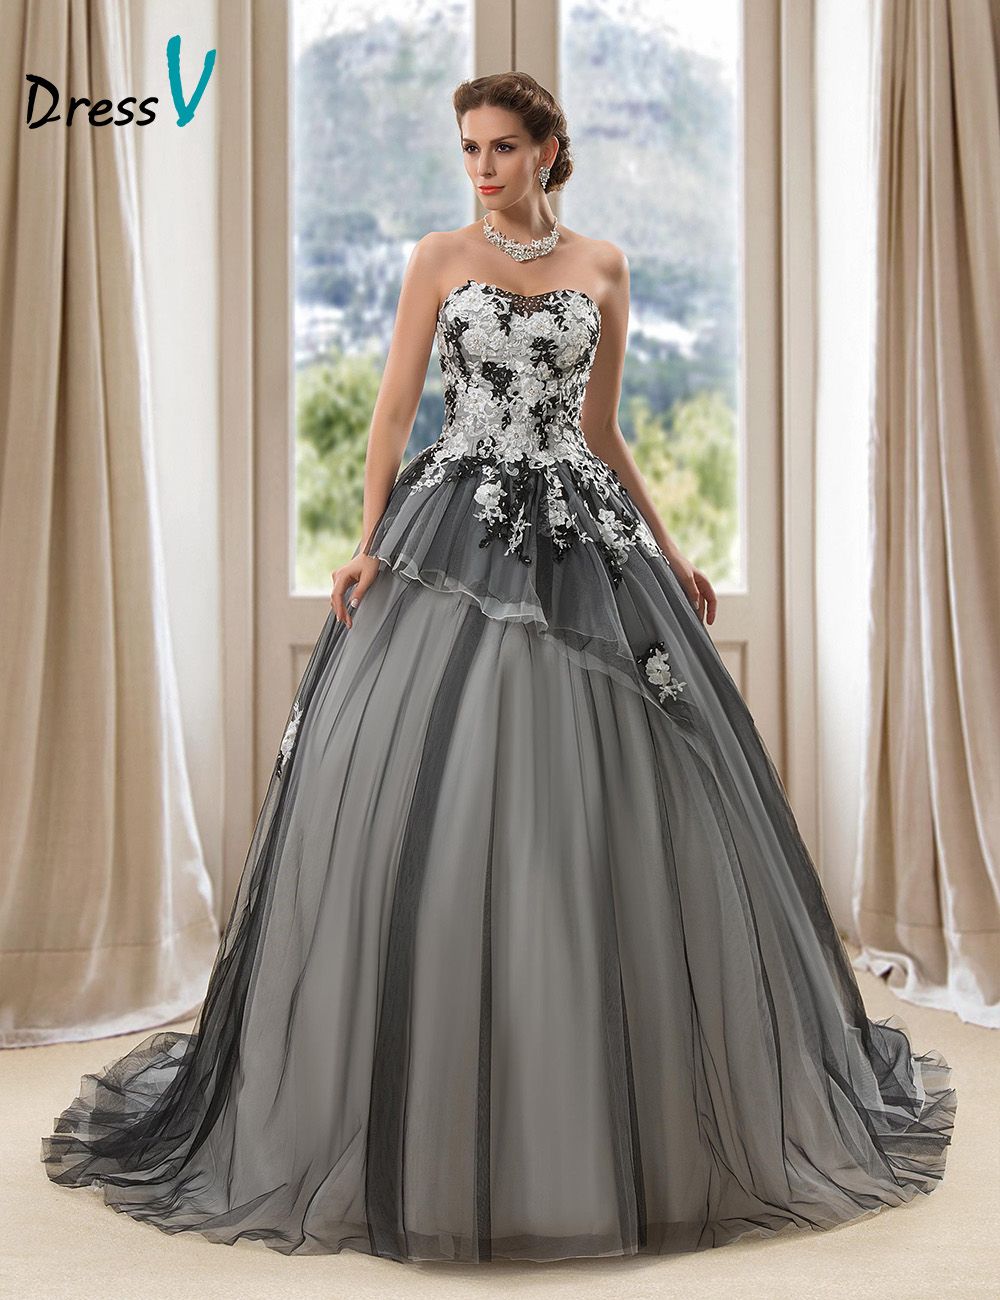 Aliexpress.com : Buy Vintage BlackWedding Gowns Ball Gown Wedding ...